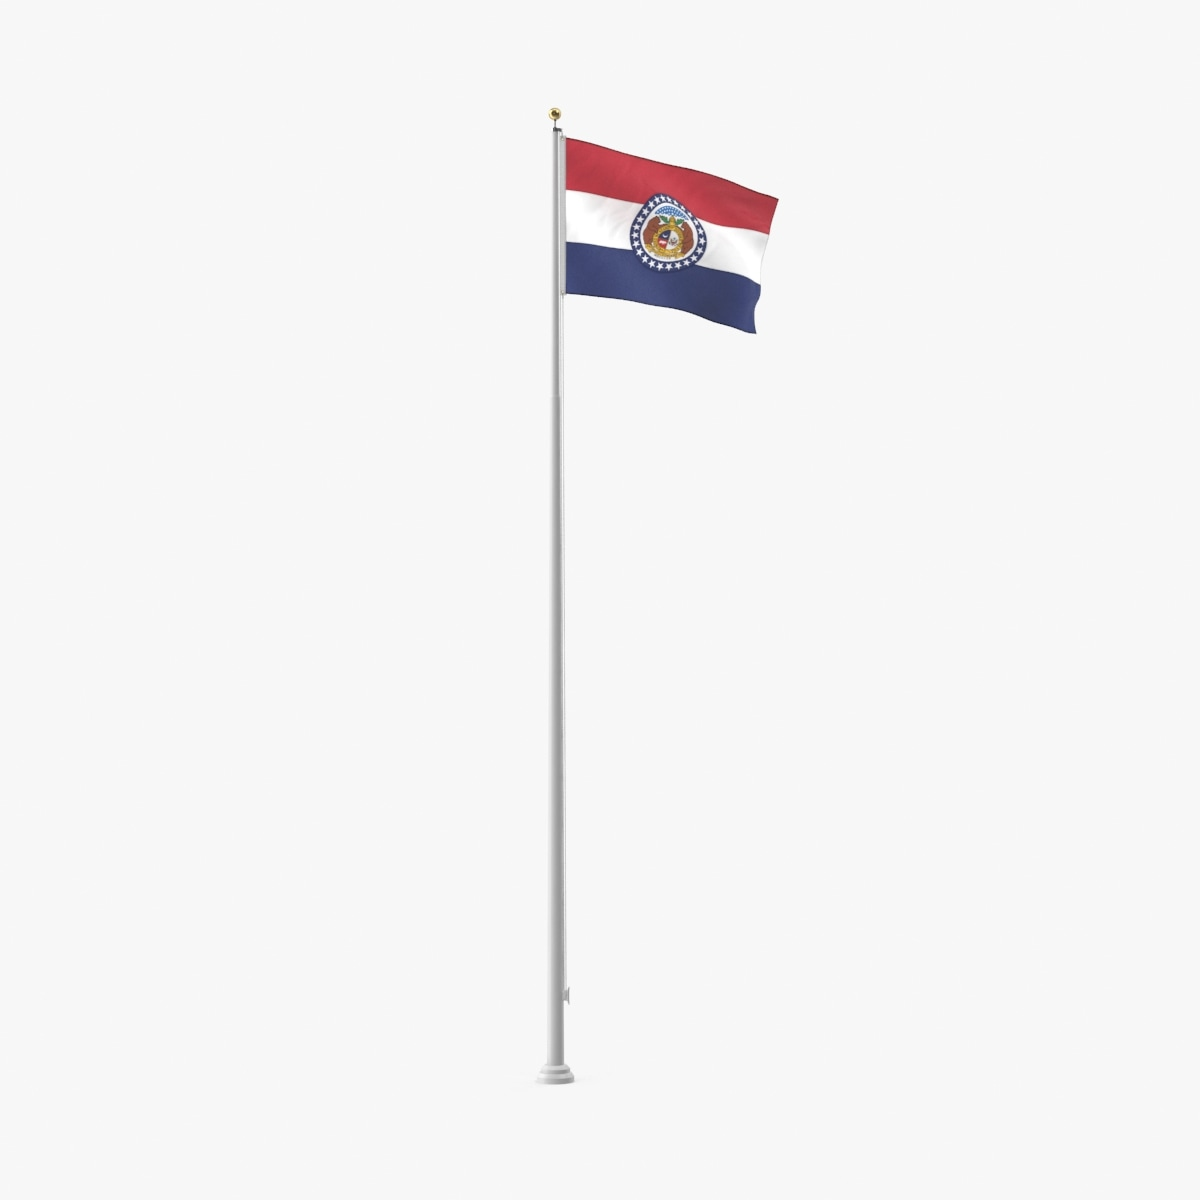 state-flags---missouri 3D model